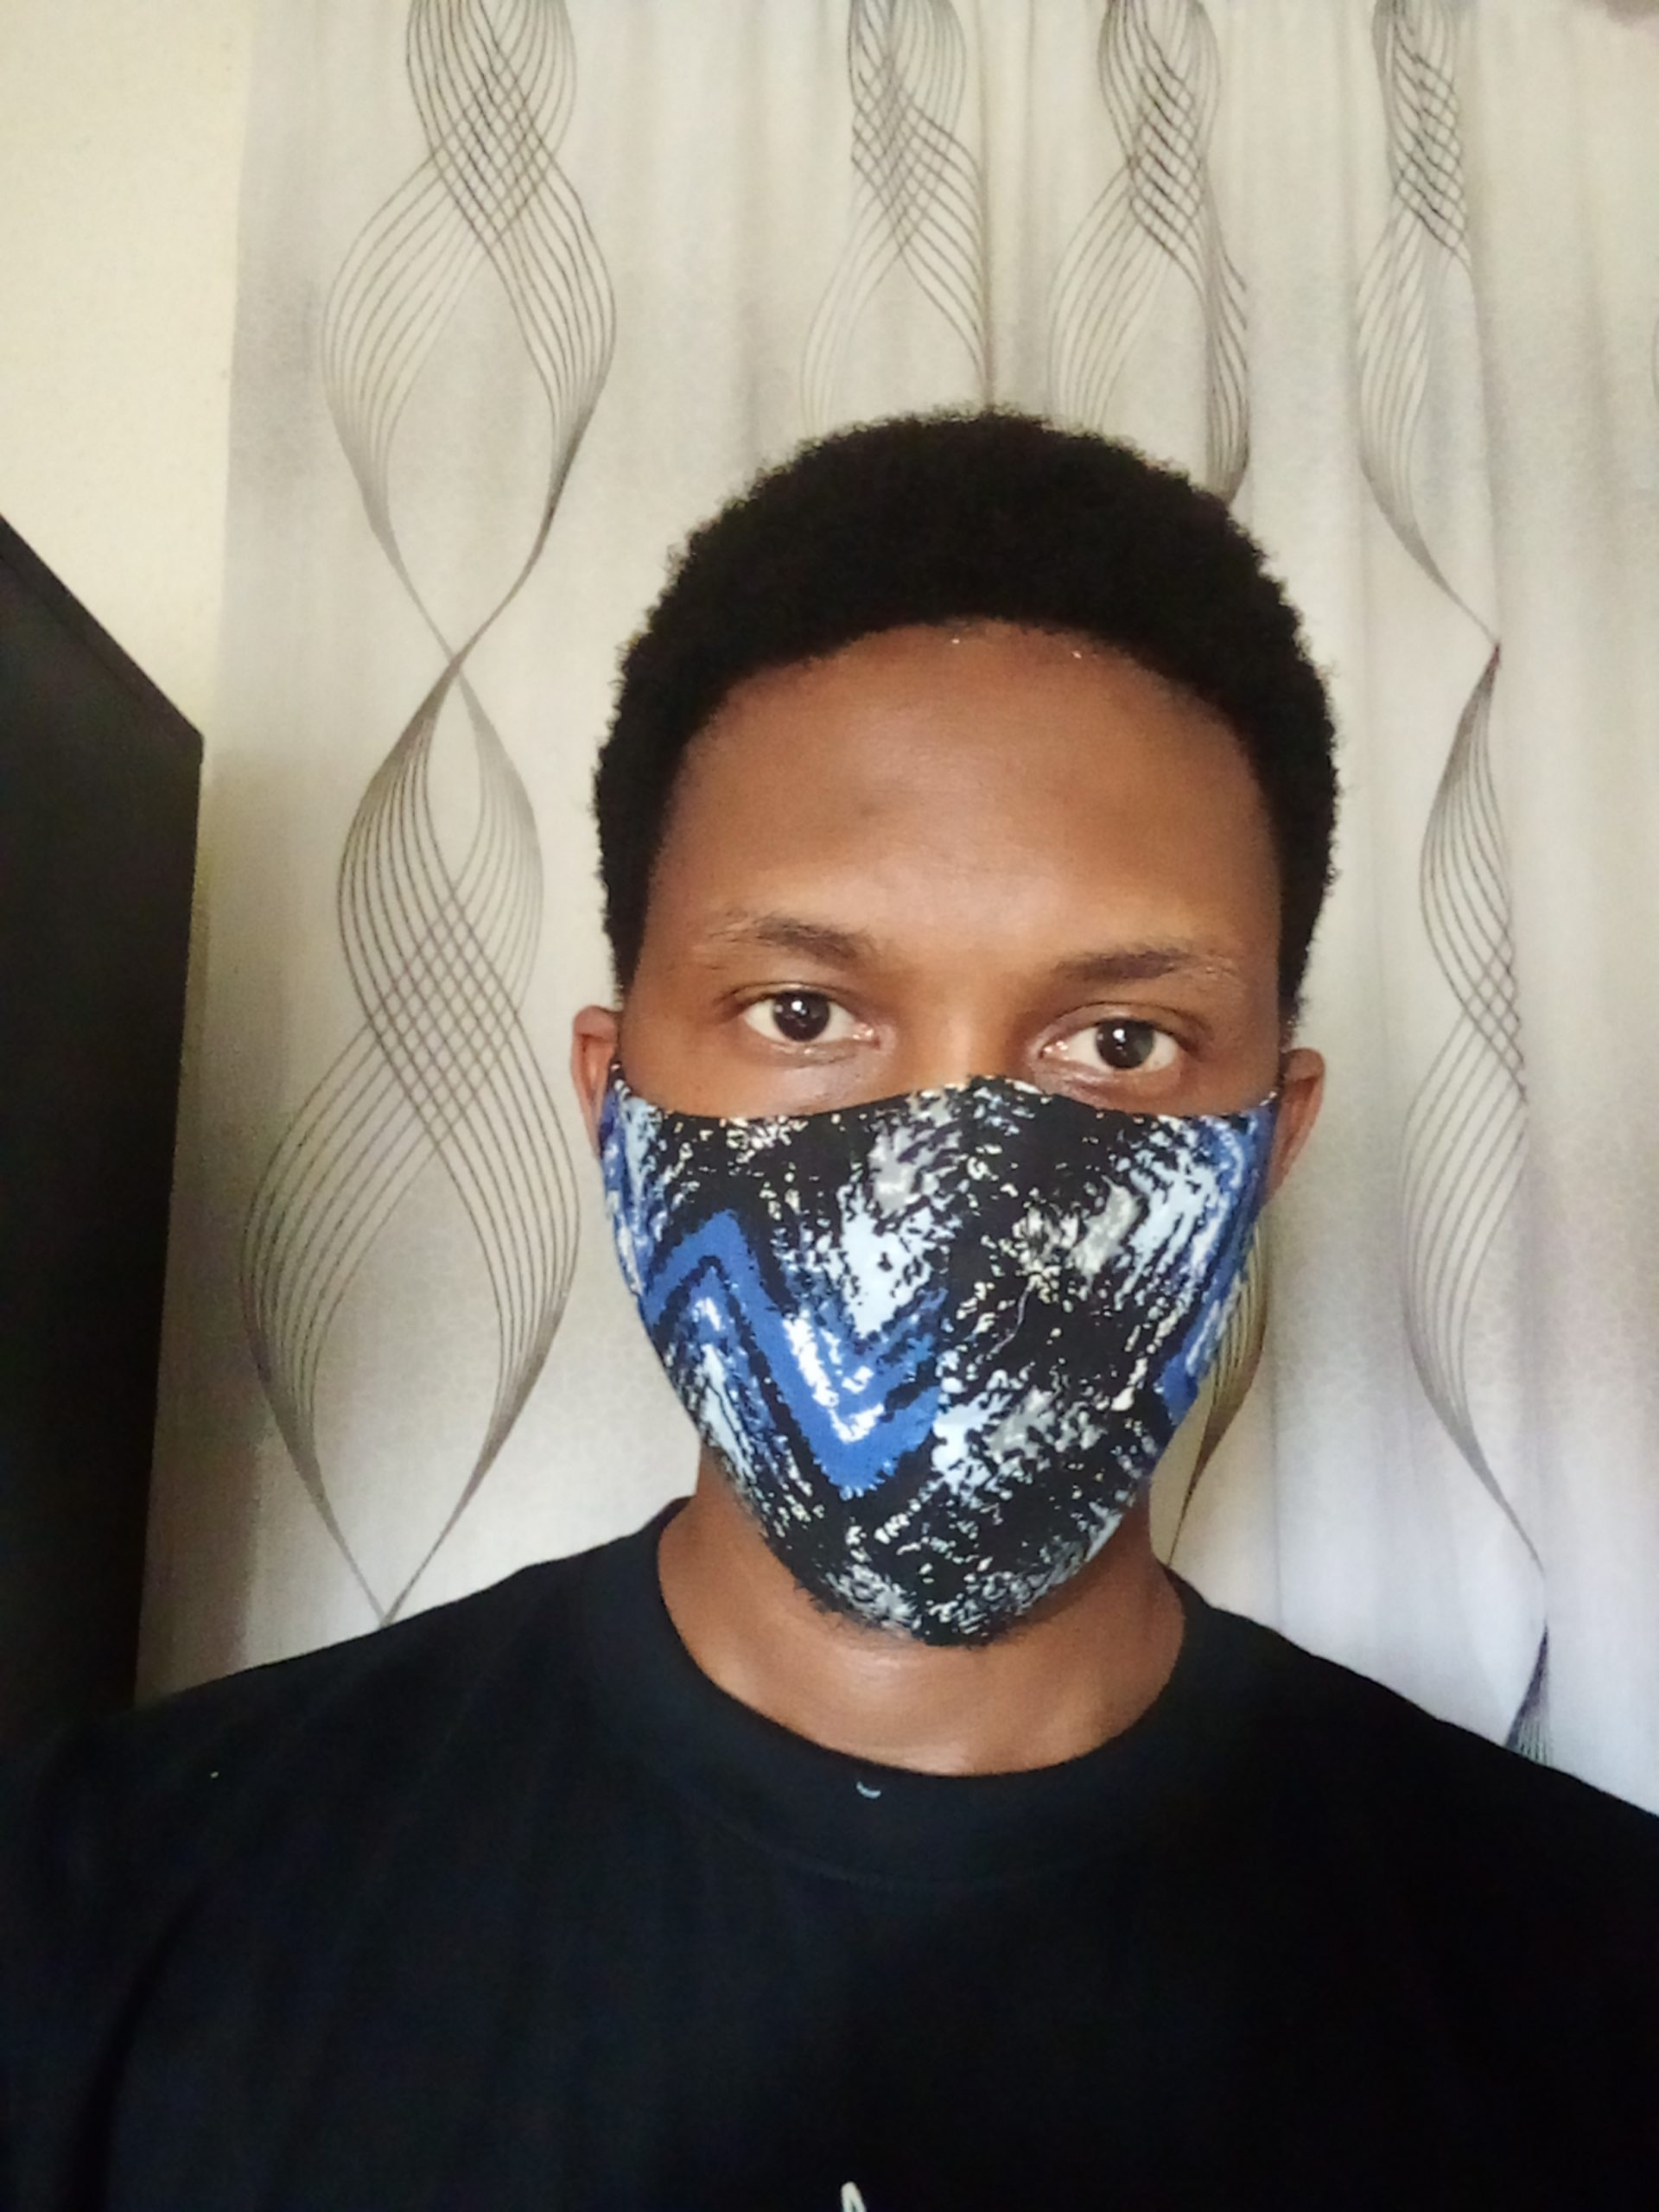 Prolonged use of the mask Results to hypoxia – Expert Warns